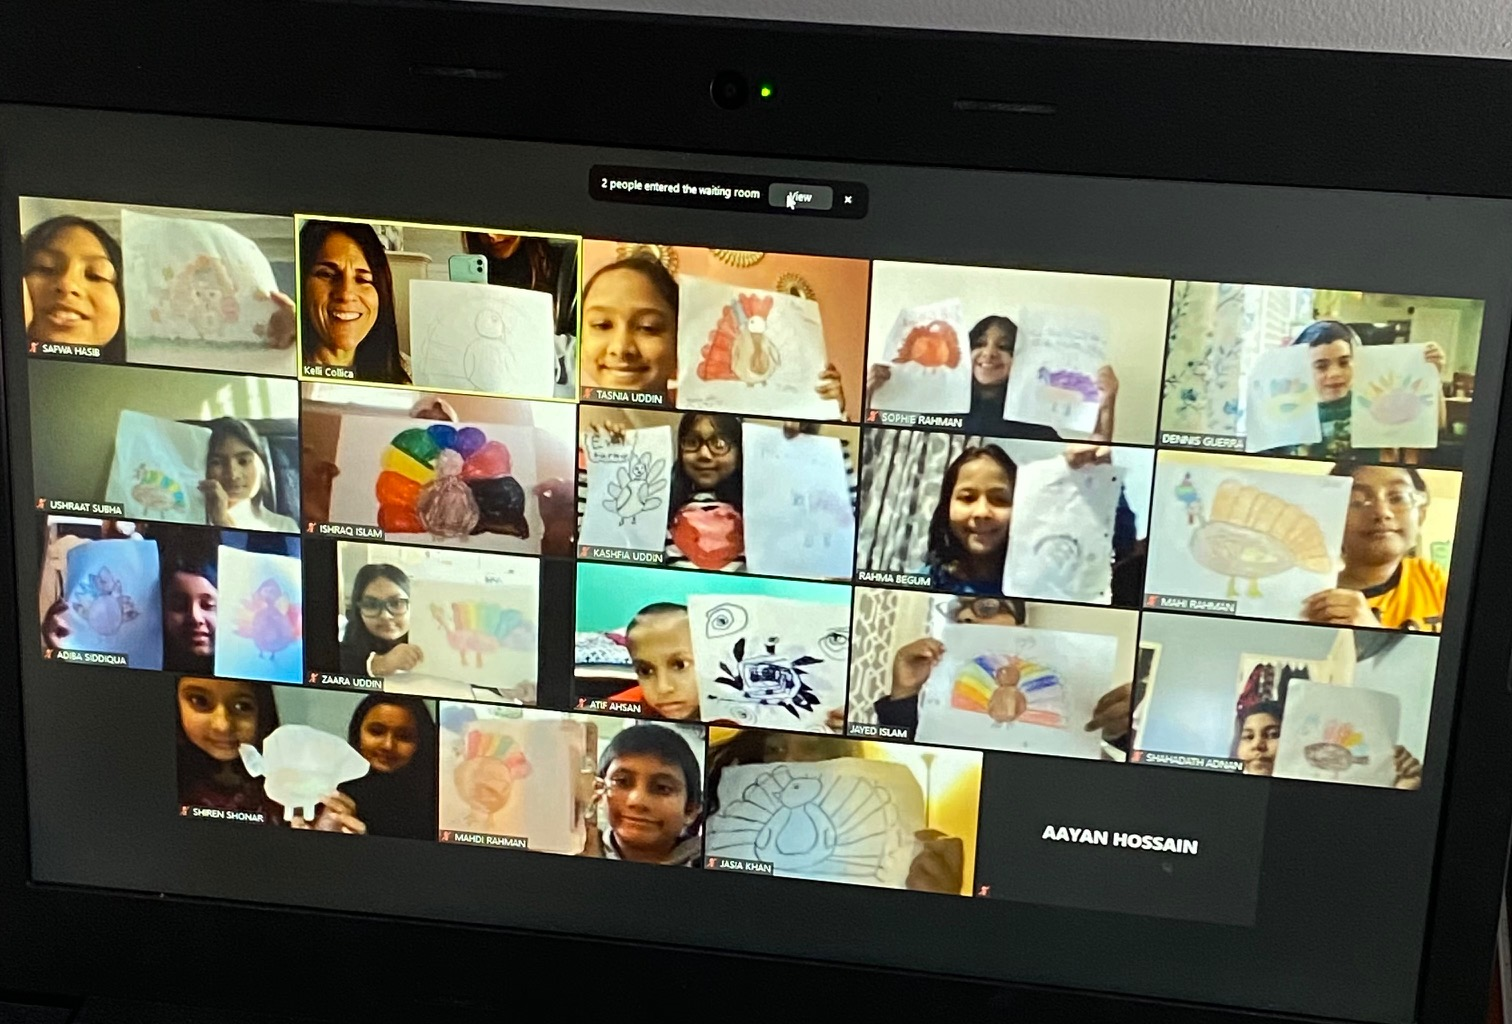 A zoom screen with students showing their work.